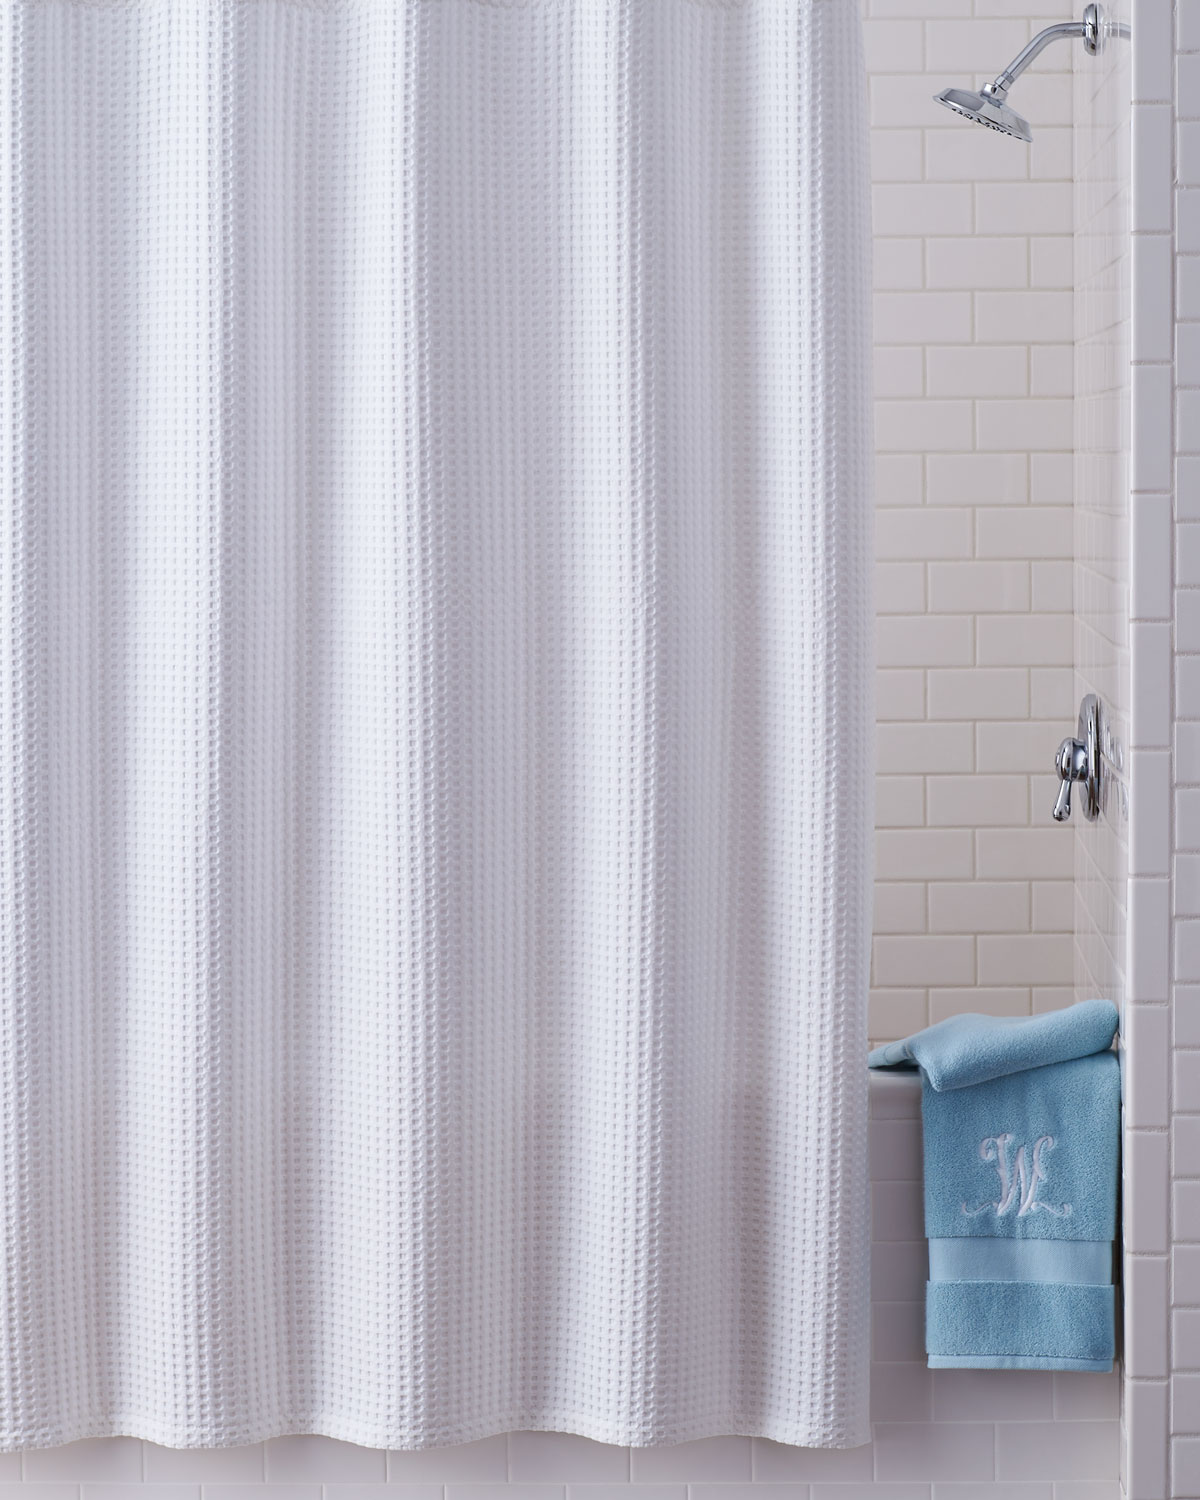 Kassatex Honeycomb Shower Curtain